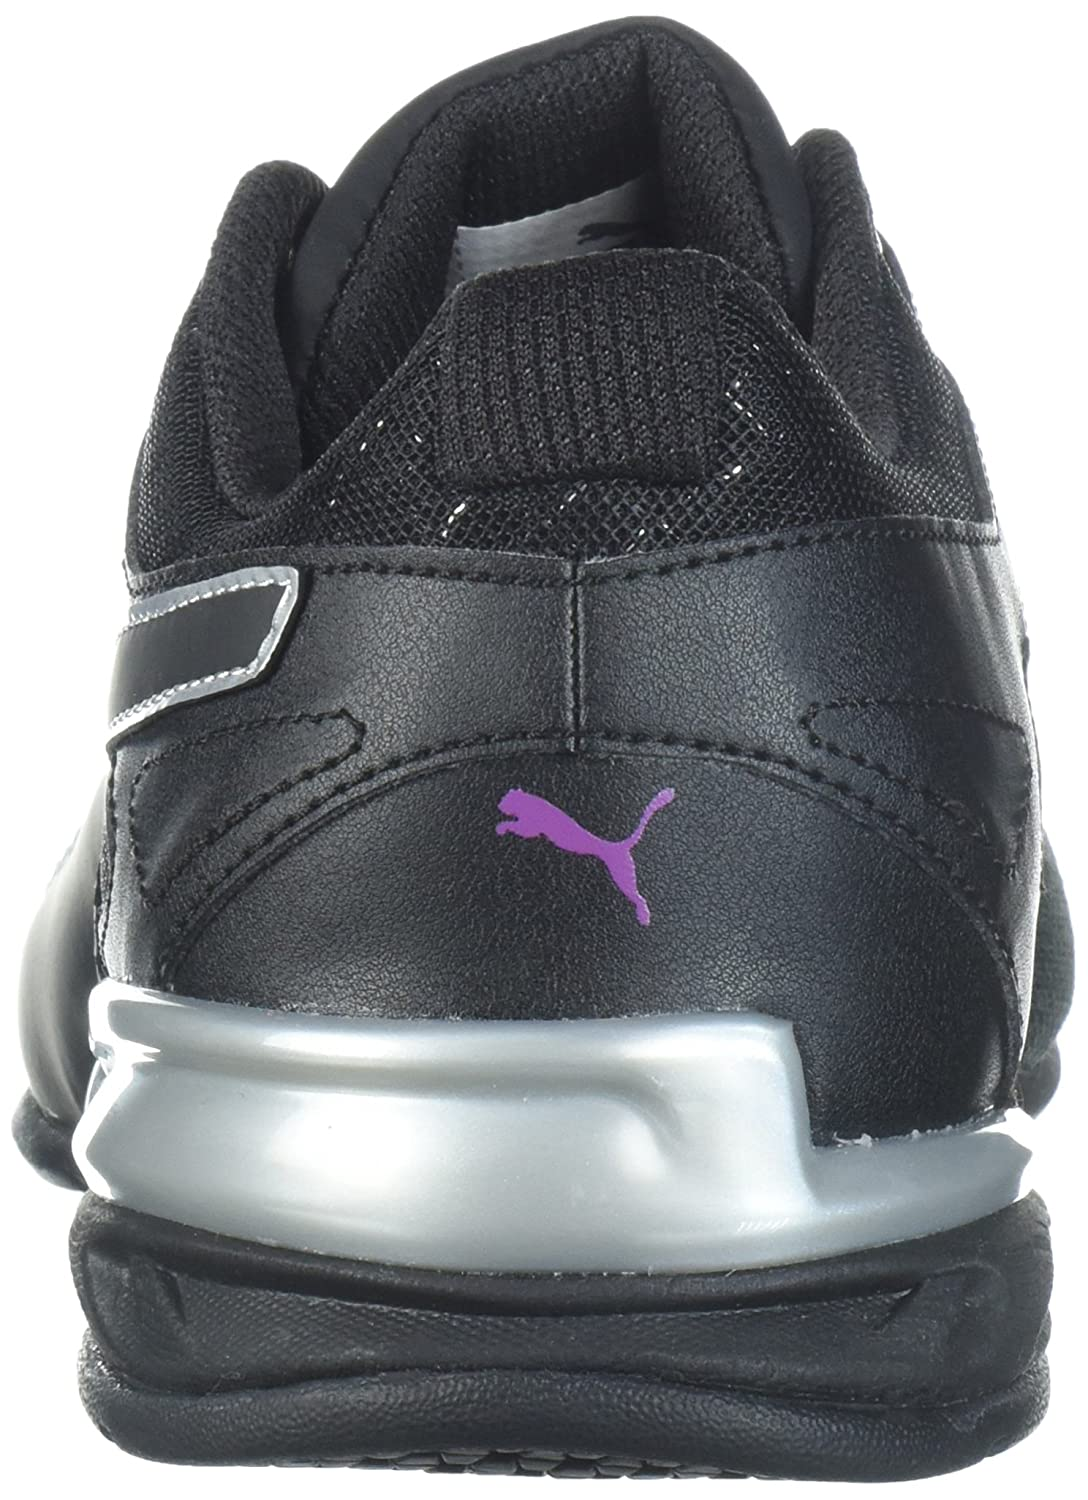 PUMA Women's Tazon 6 Metallic Wn Sneaker B071GNPQST 6.5 B(M) US|Puma Black-grape Kiss